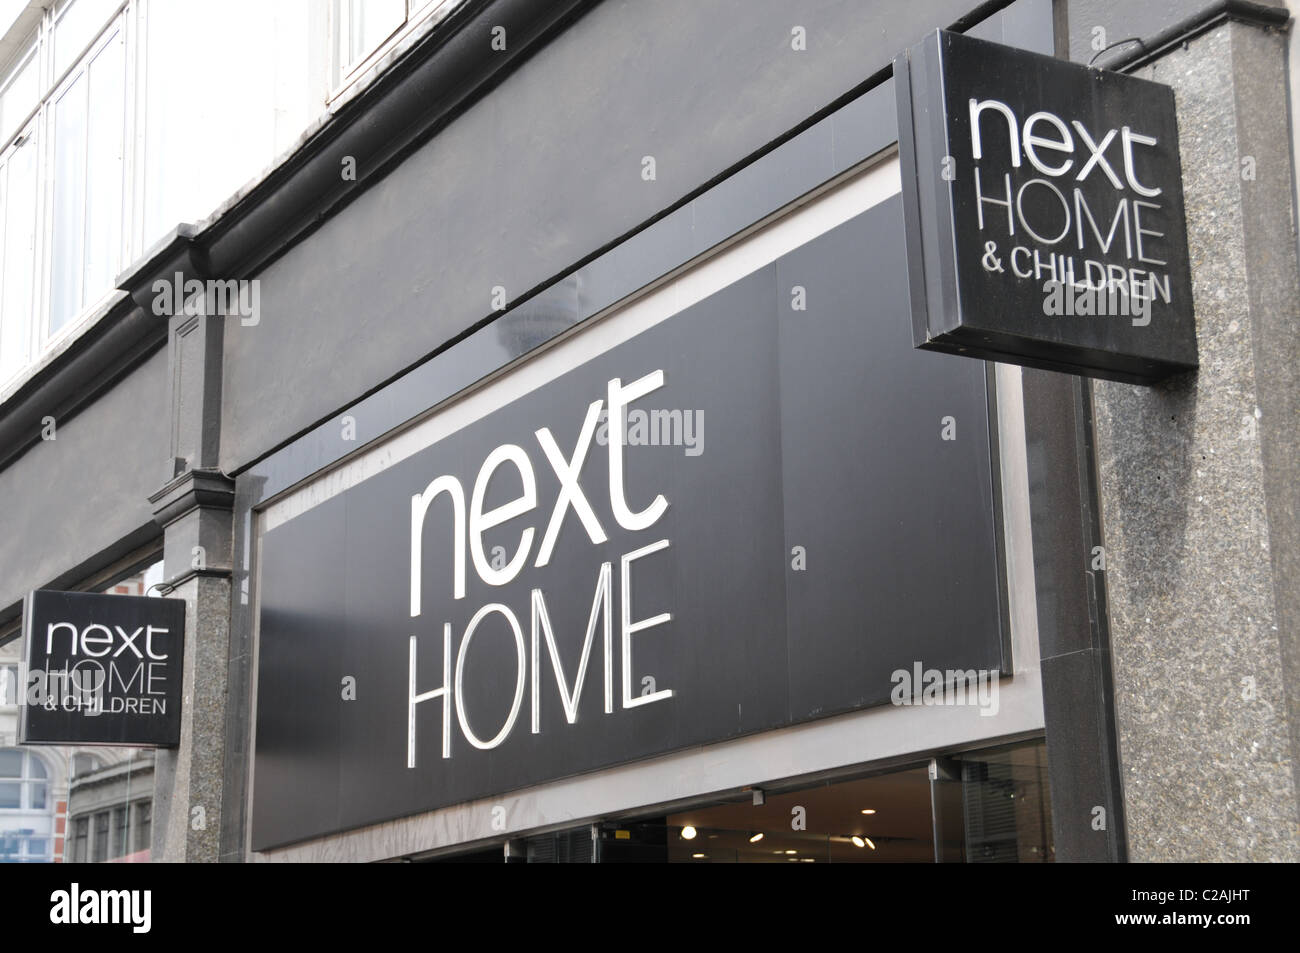 next home store logo shop sign furnishings fabrics rooms. Black Bedroom Furniture Sets. Home Design Ideas